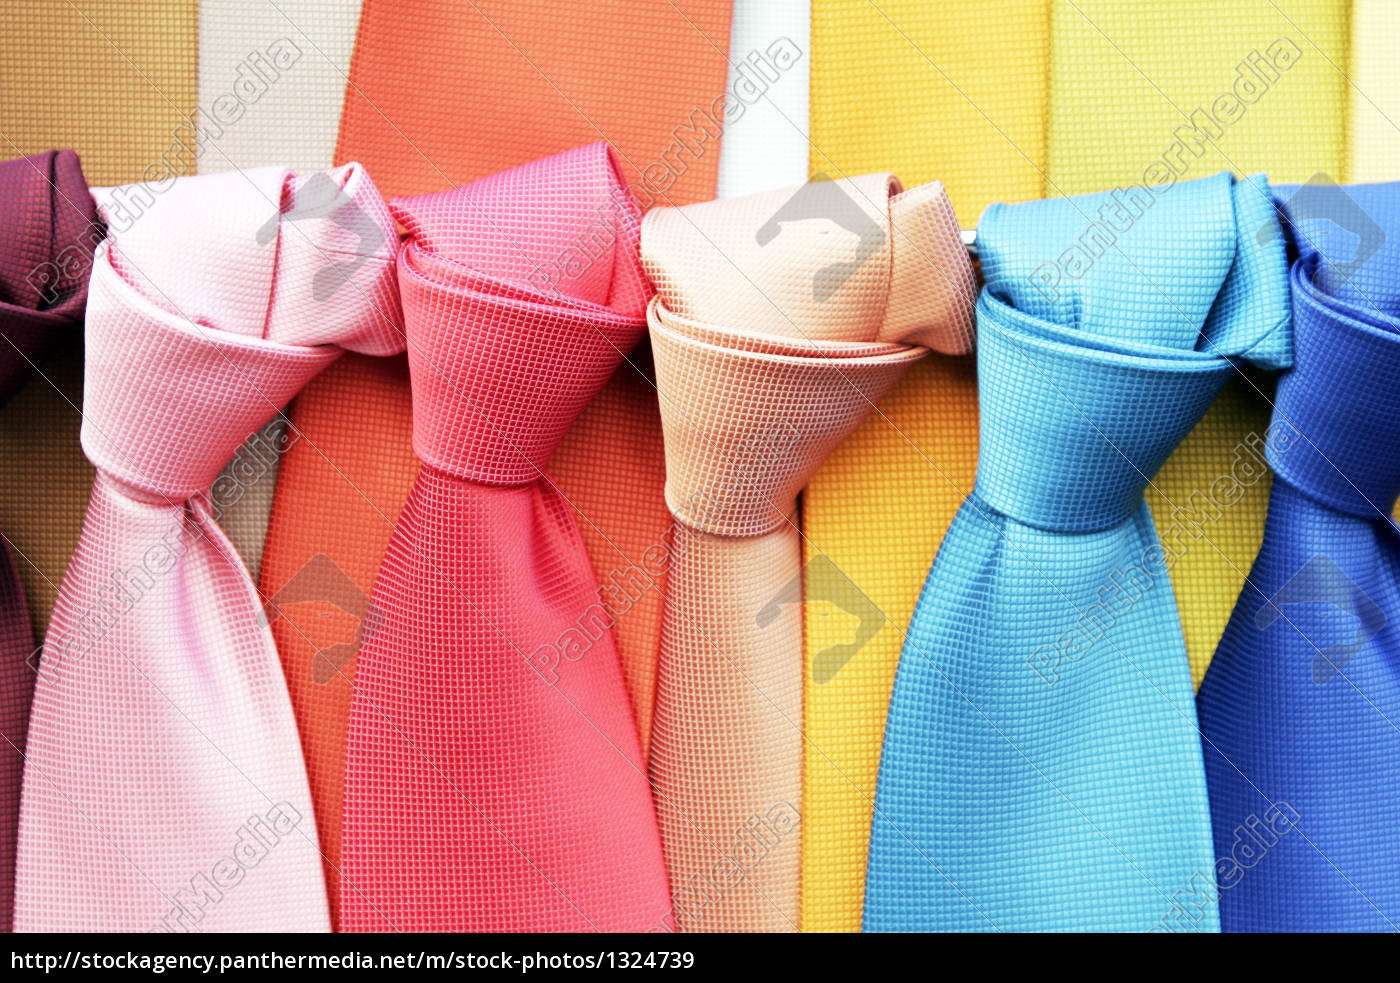 colourful, ties - 1324739